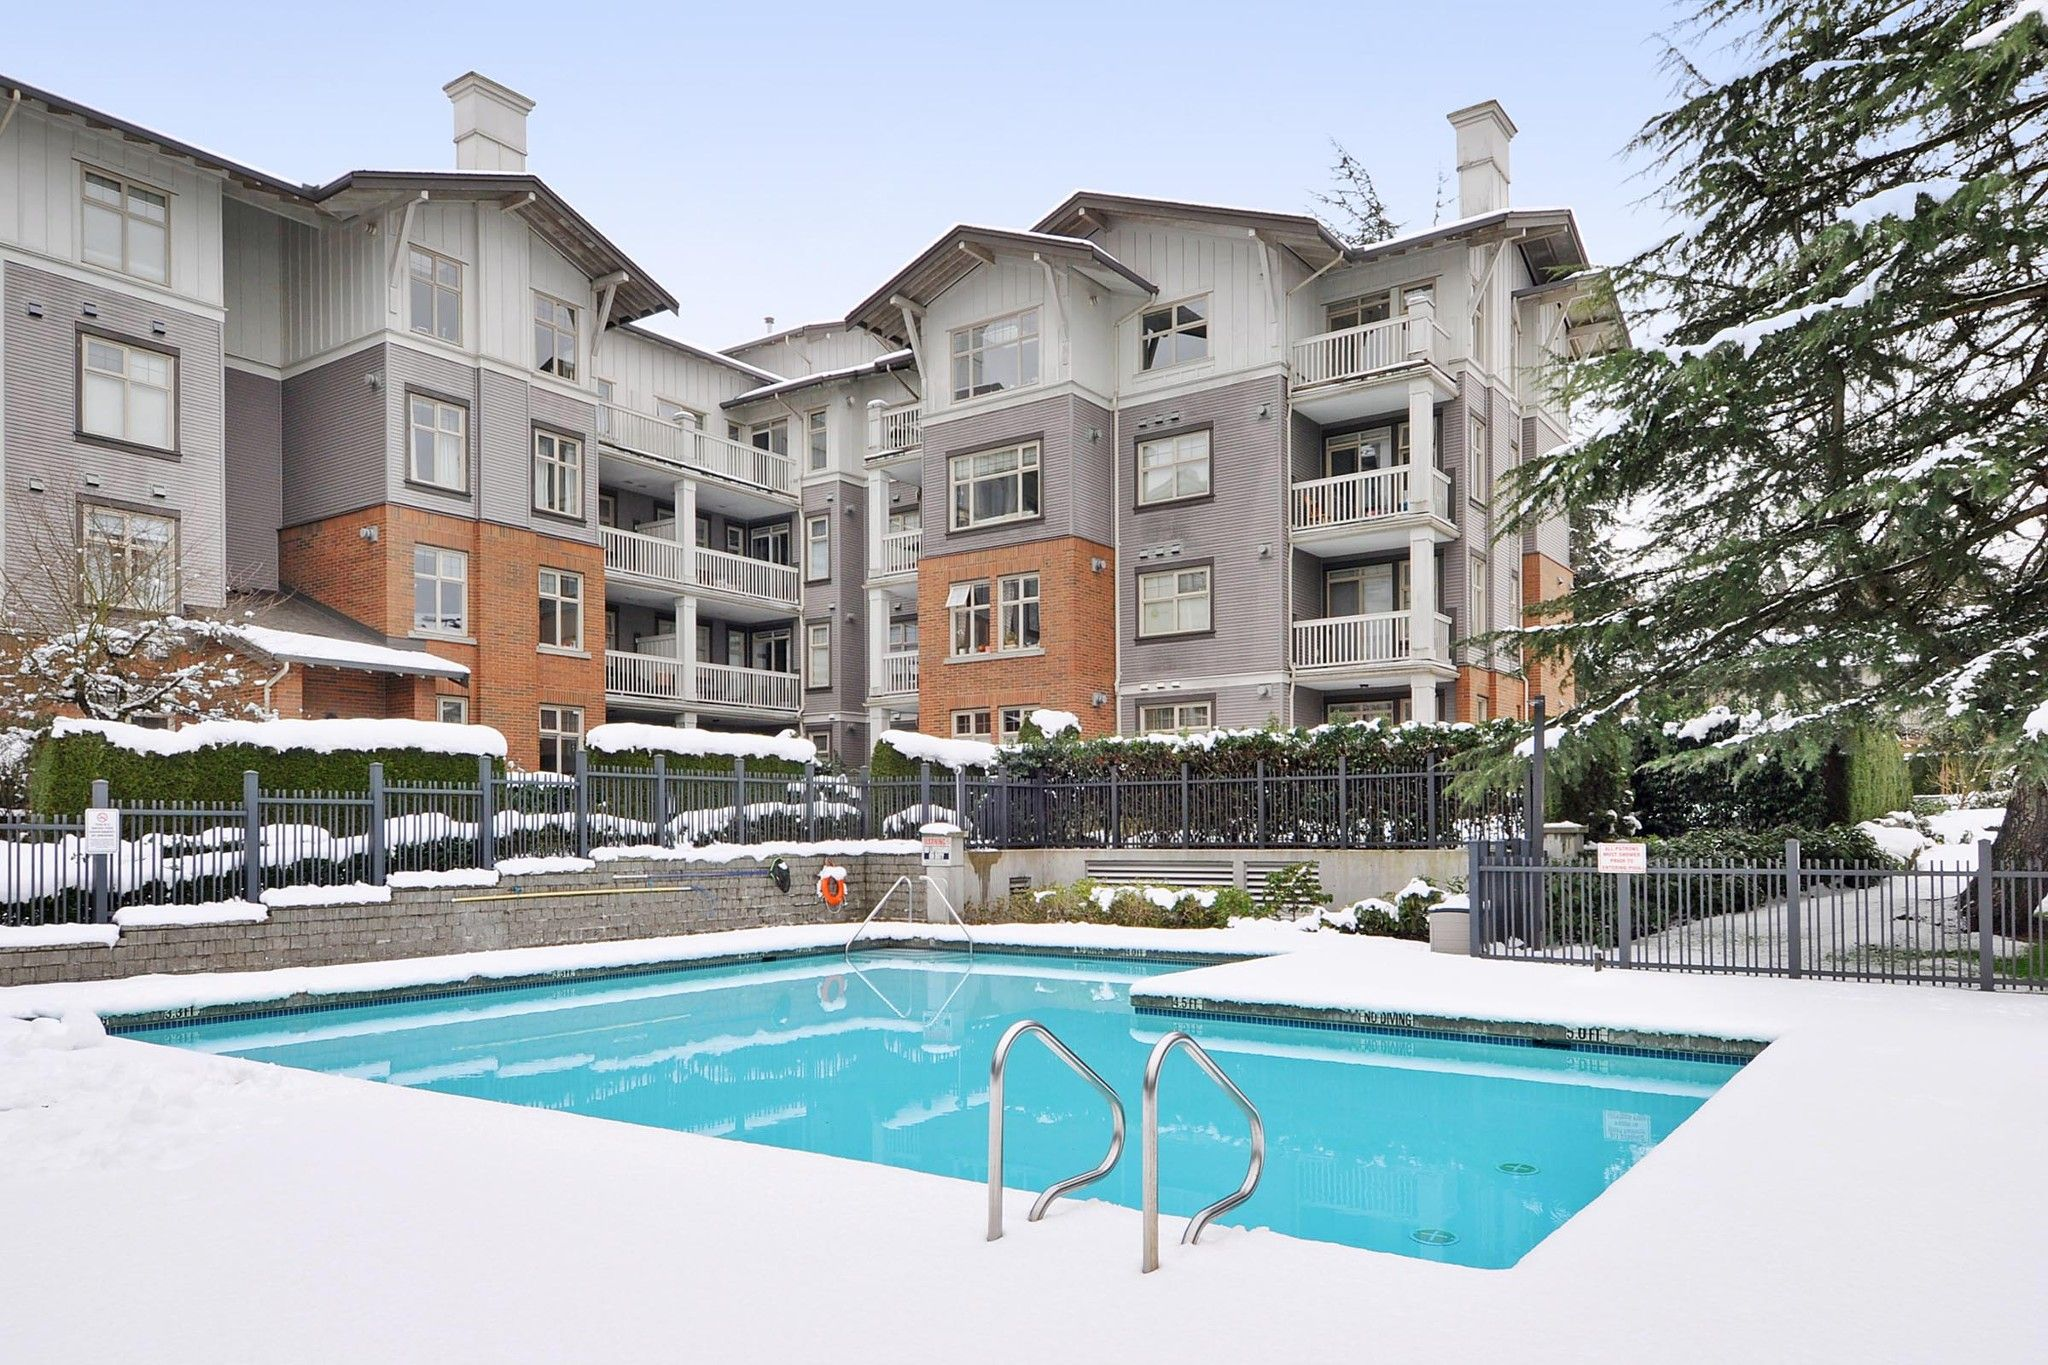 """Photo 15: Photos: 222 2083 W 33RD Avenue in Vancouver: Quilchena Condo for sale in """"DEVONSHIRE HOUSE"""" (Vancouver West)  : MLS®# R2341234"""